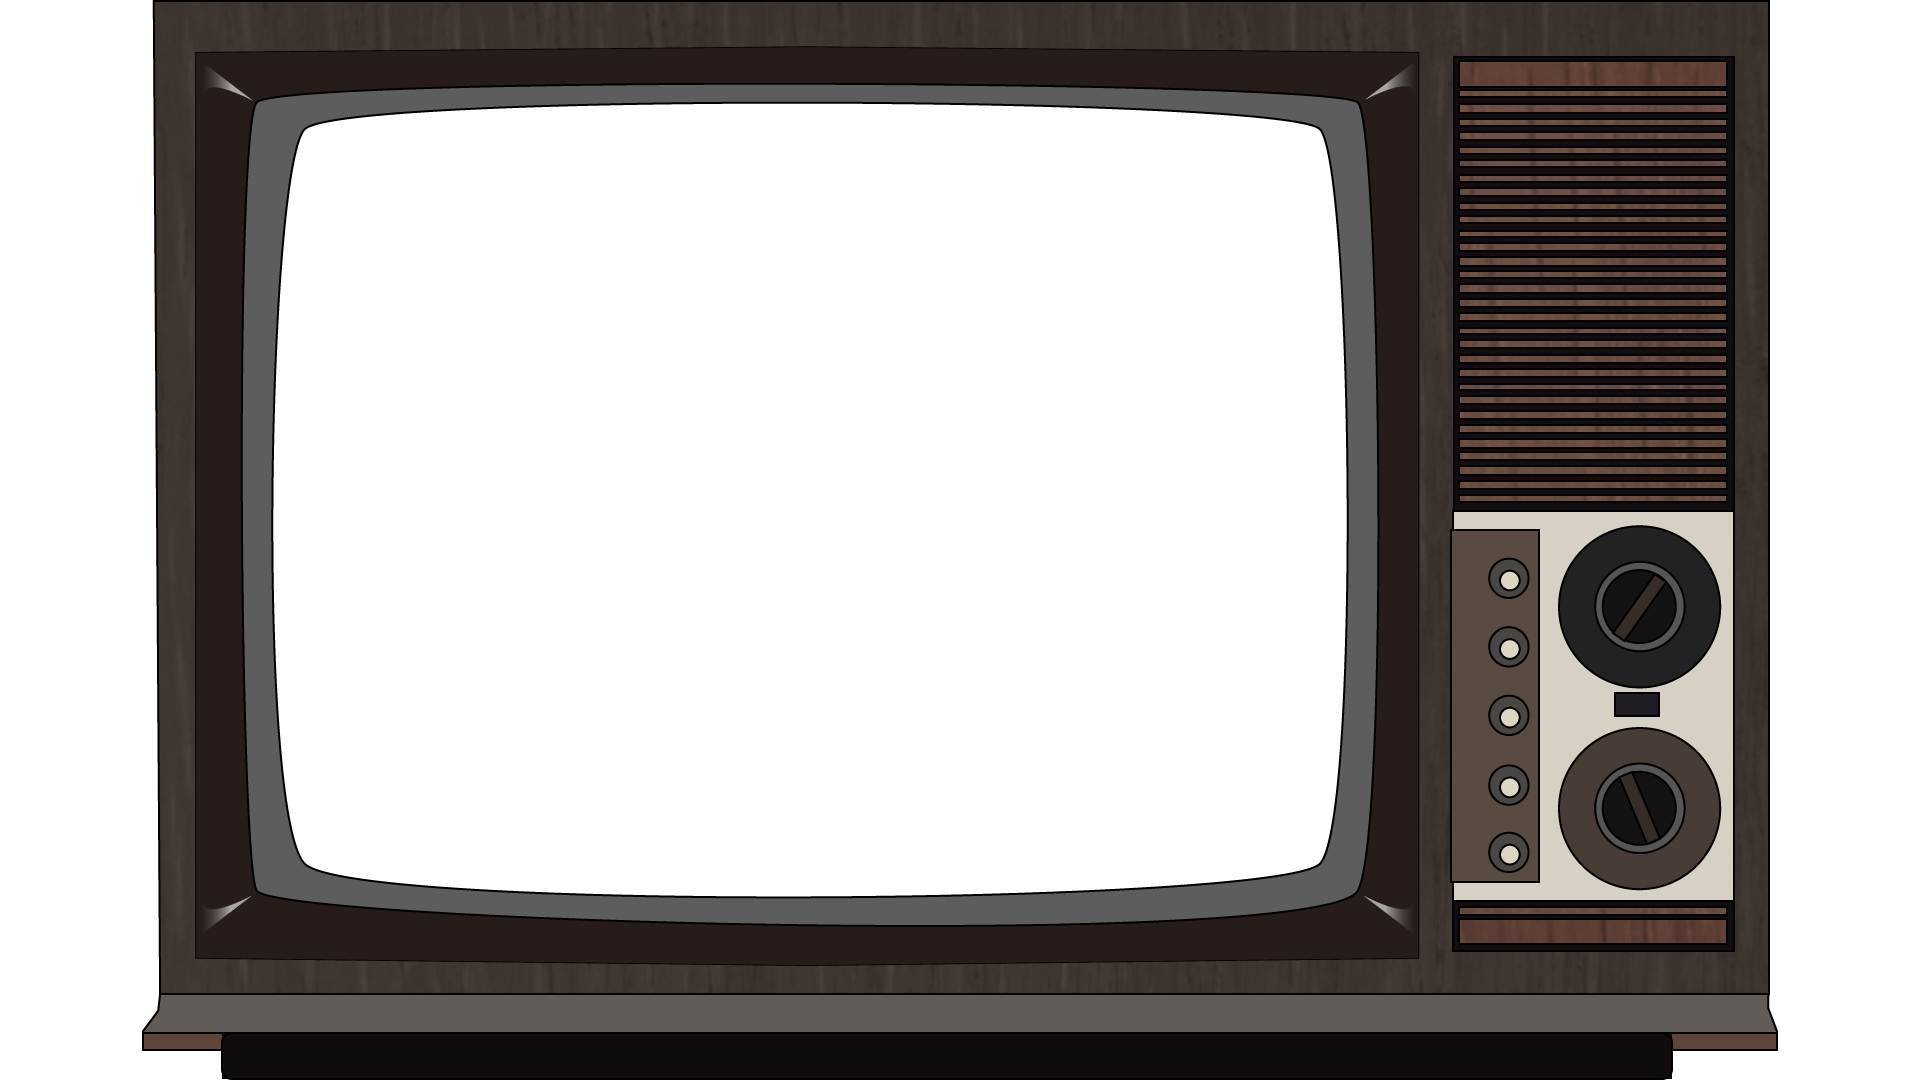 Clipart tv large. Old television png image